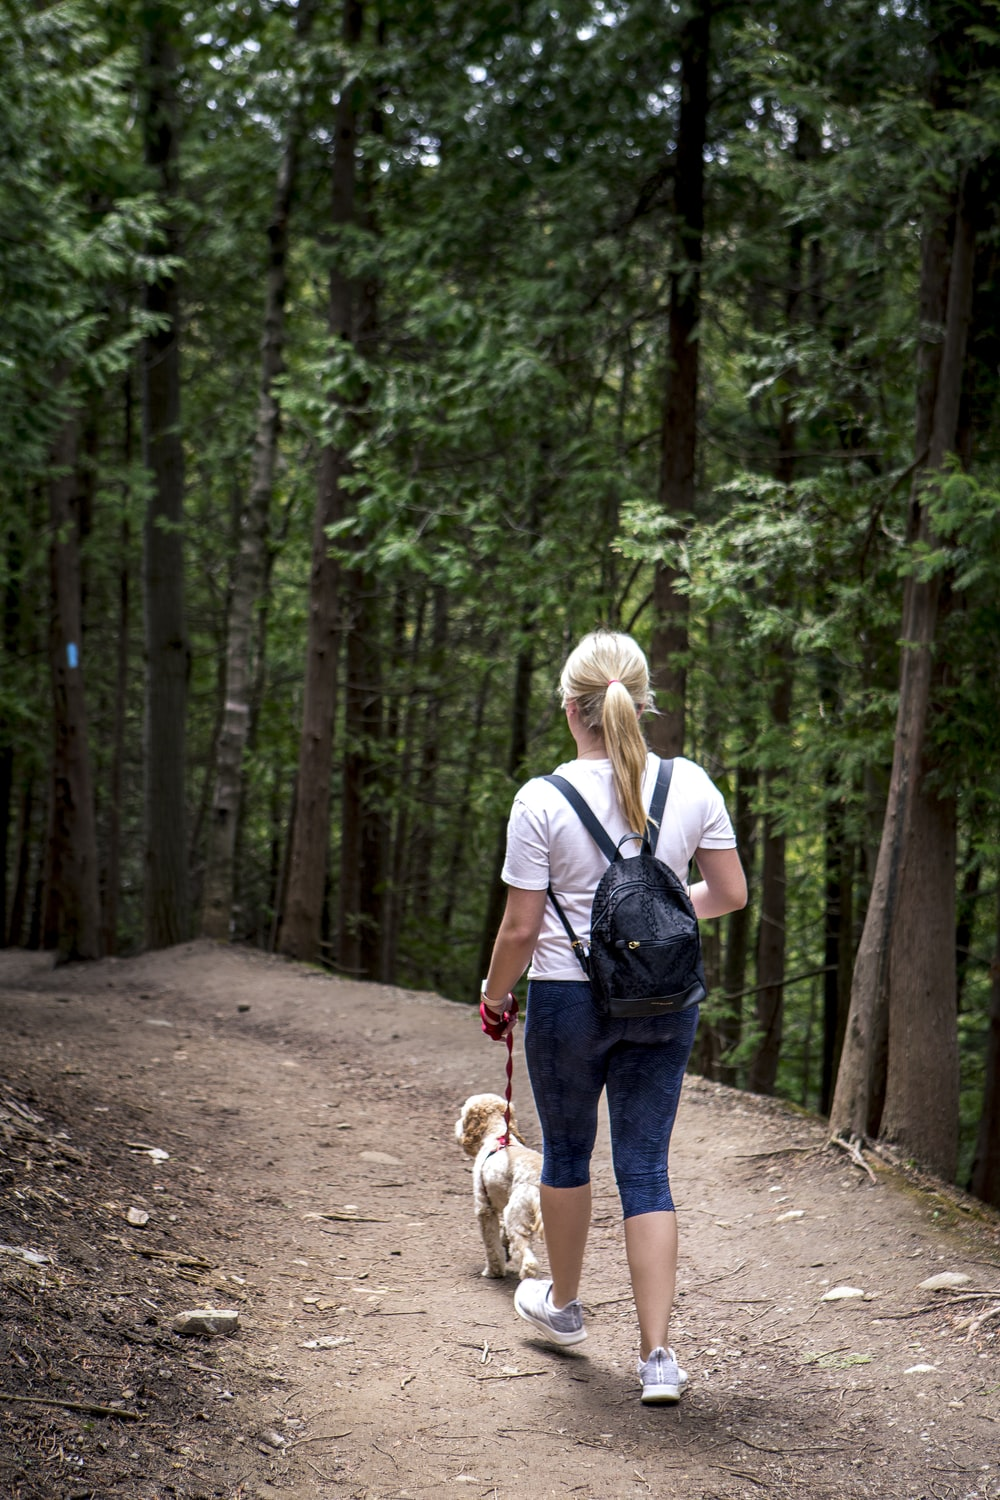 woman in white shirt and blue denim jeans holding brown and white short coated dog